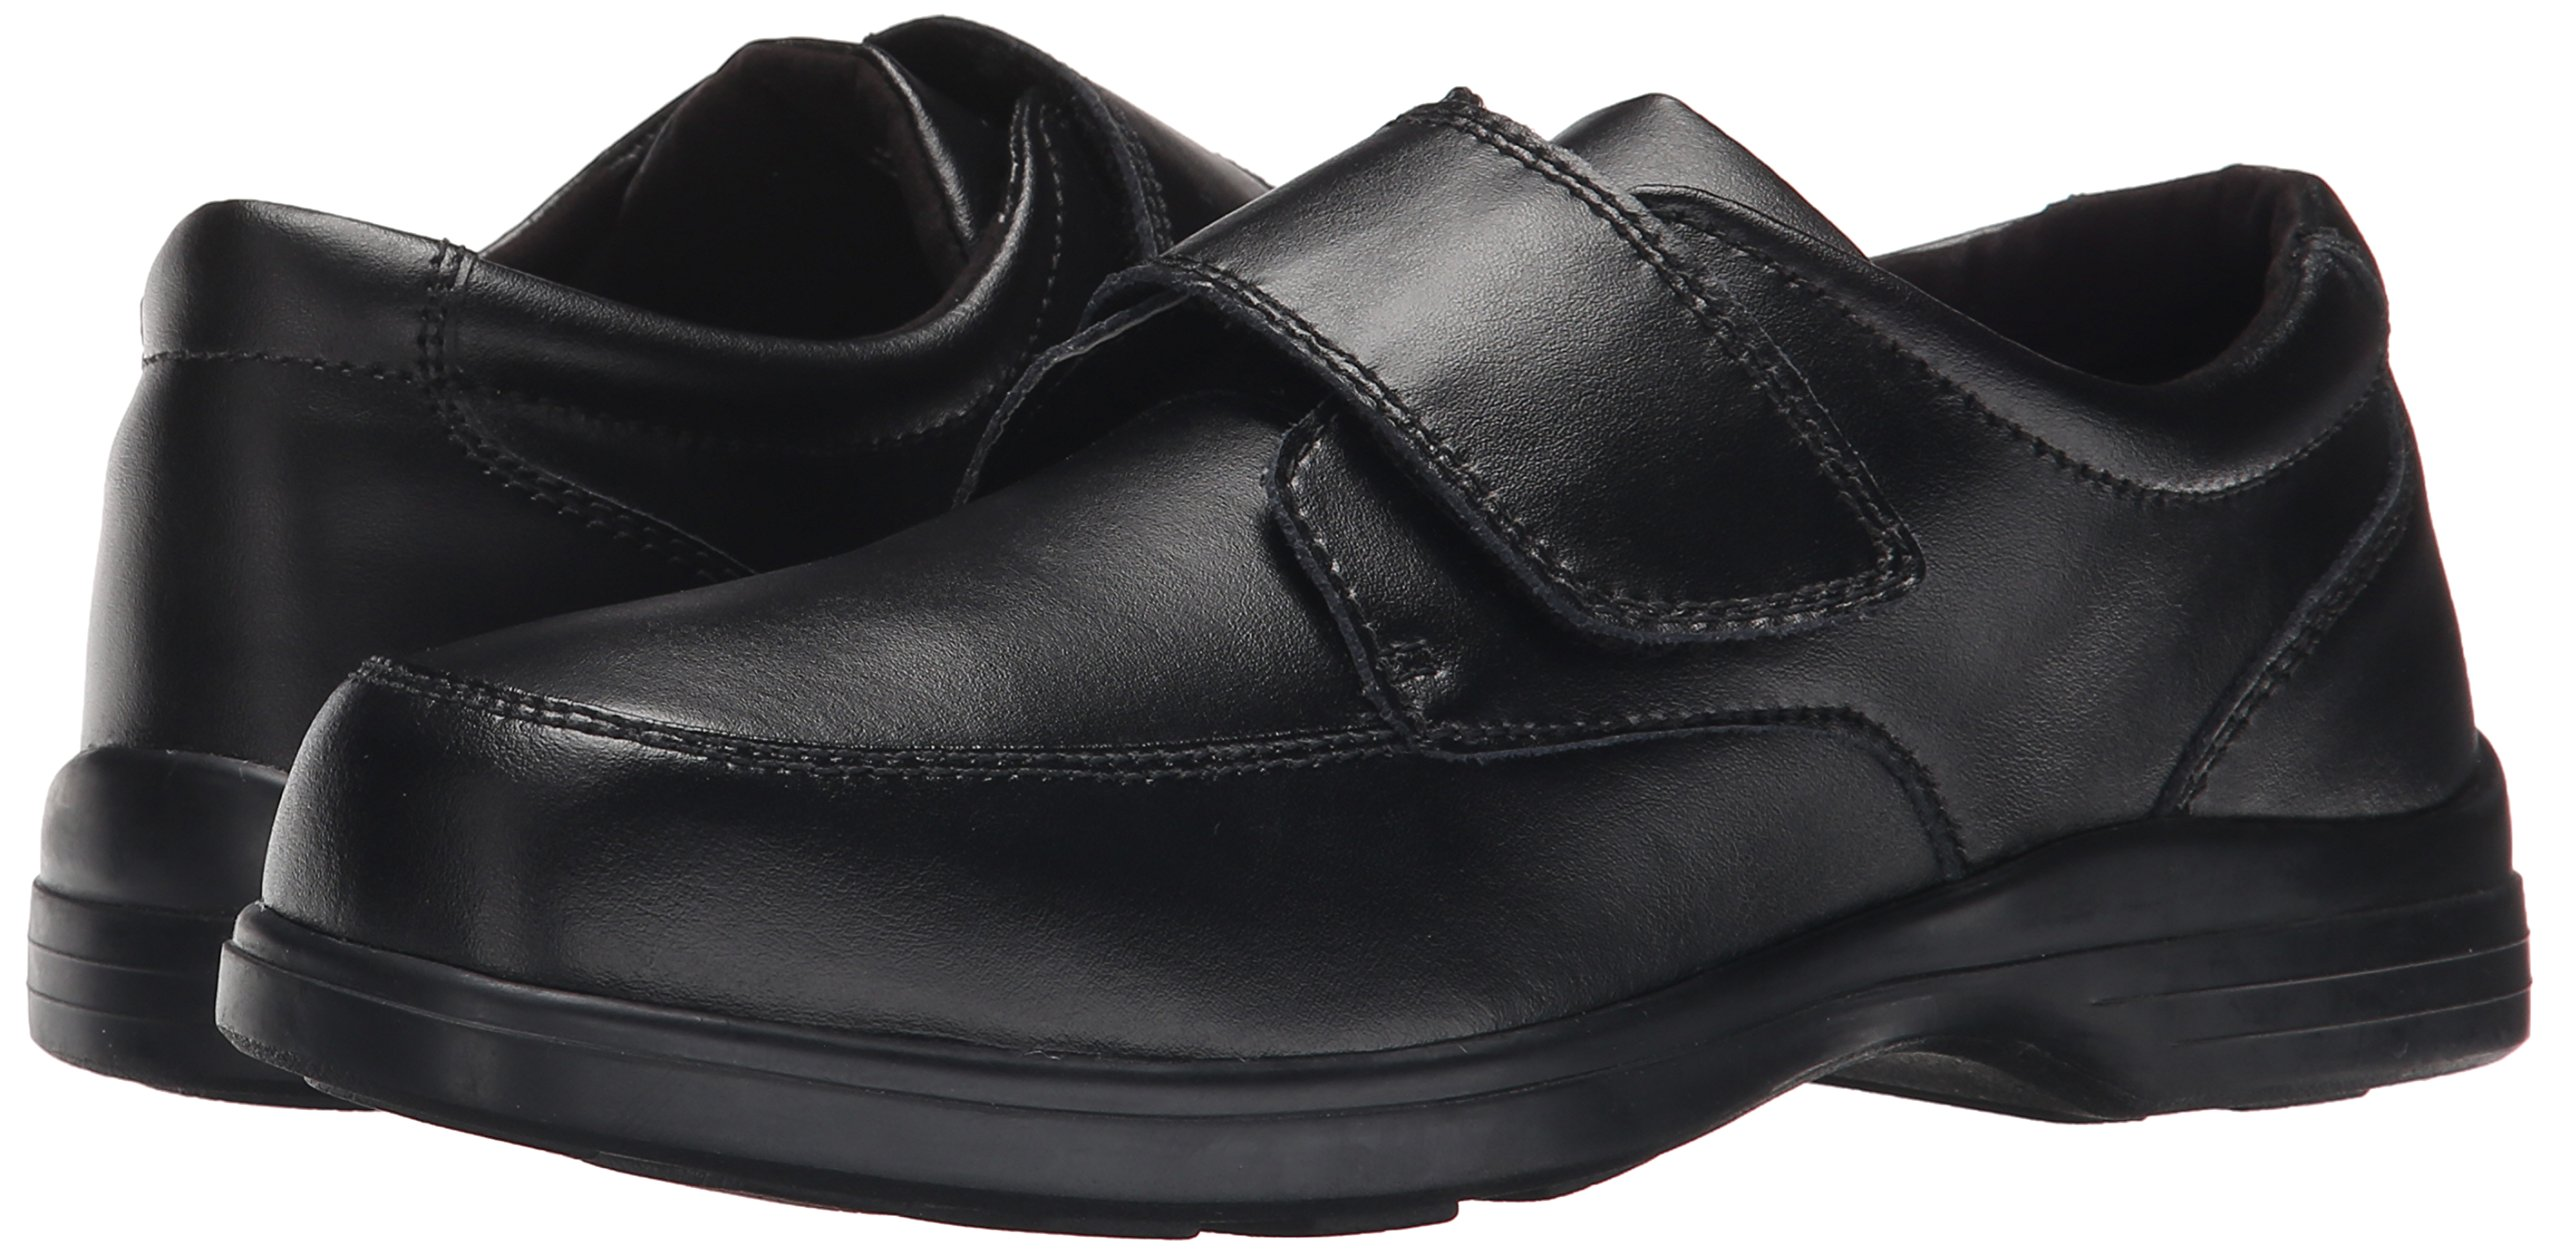 Hush Puppies Gavin Uniform Dress Shoe (Toddler/Little Kid/Big Kid), Black, 3 M US Little Kid by Hush Puppies (Image #6)